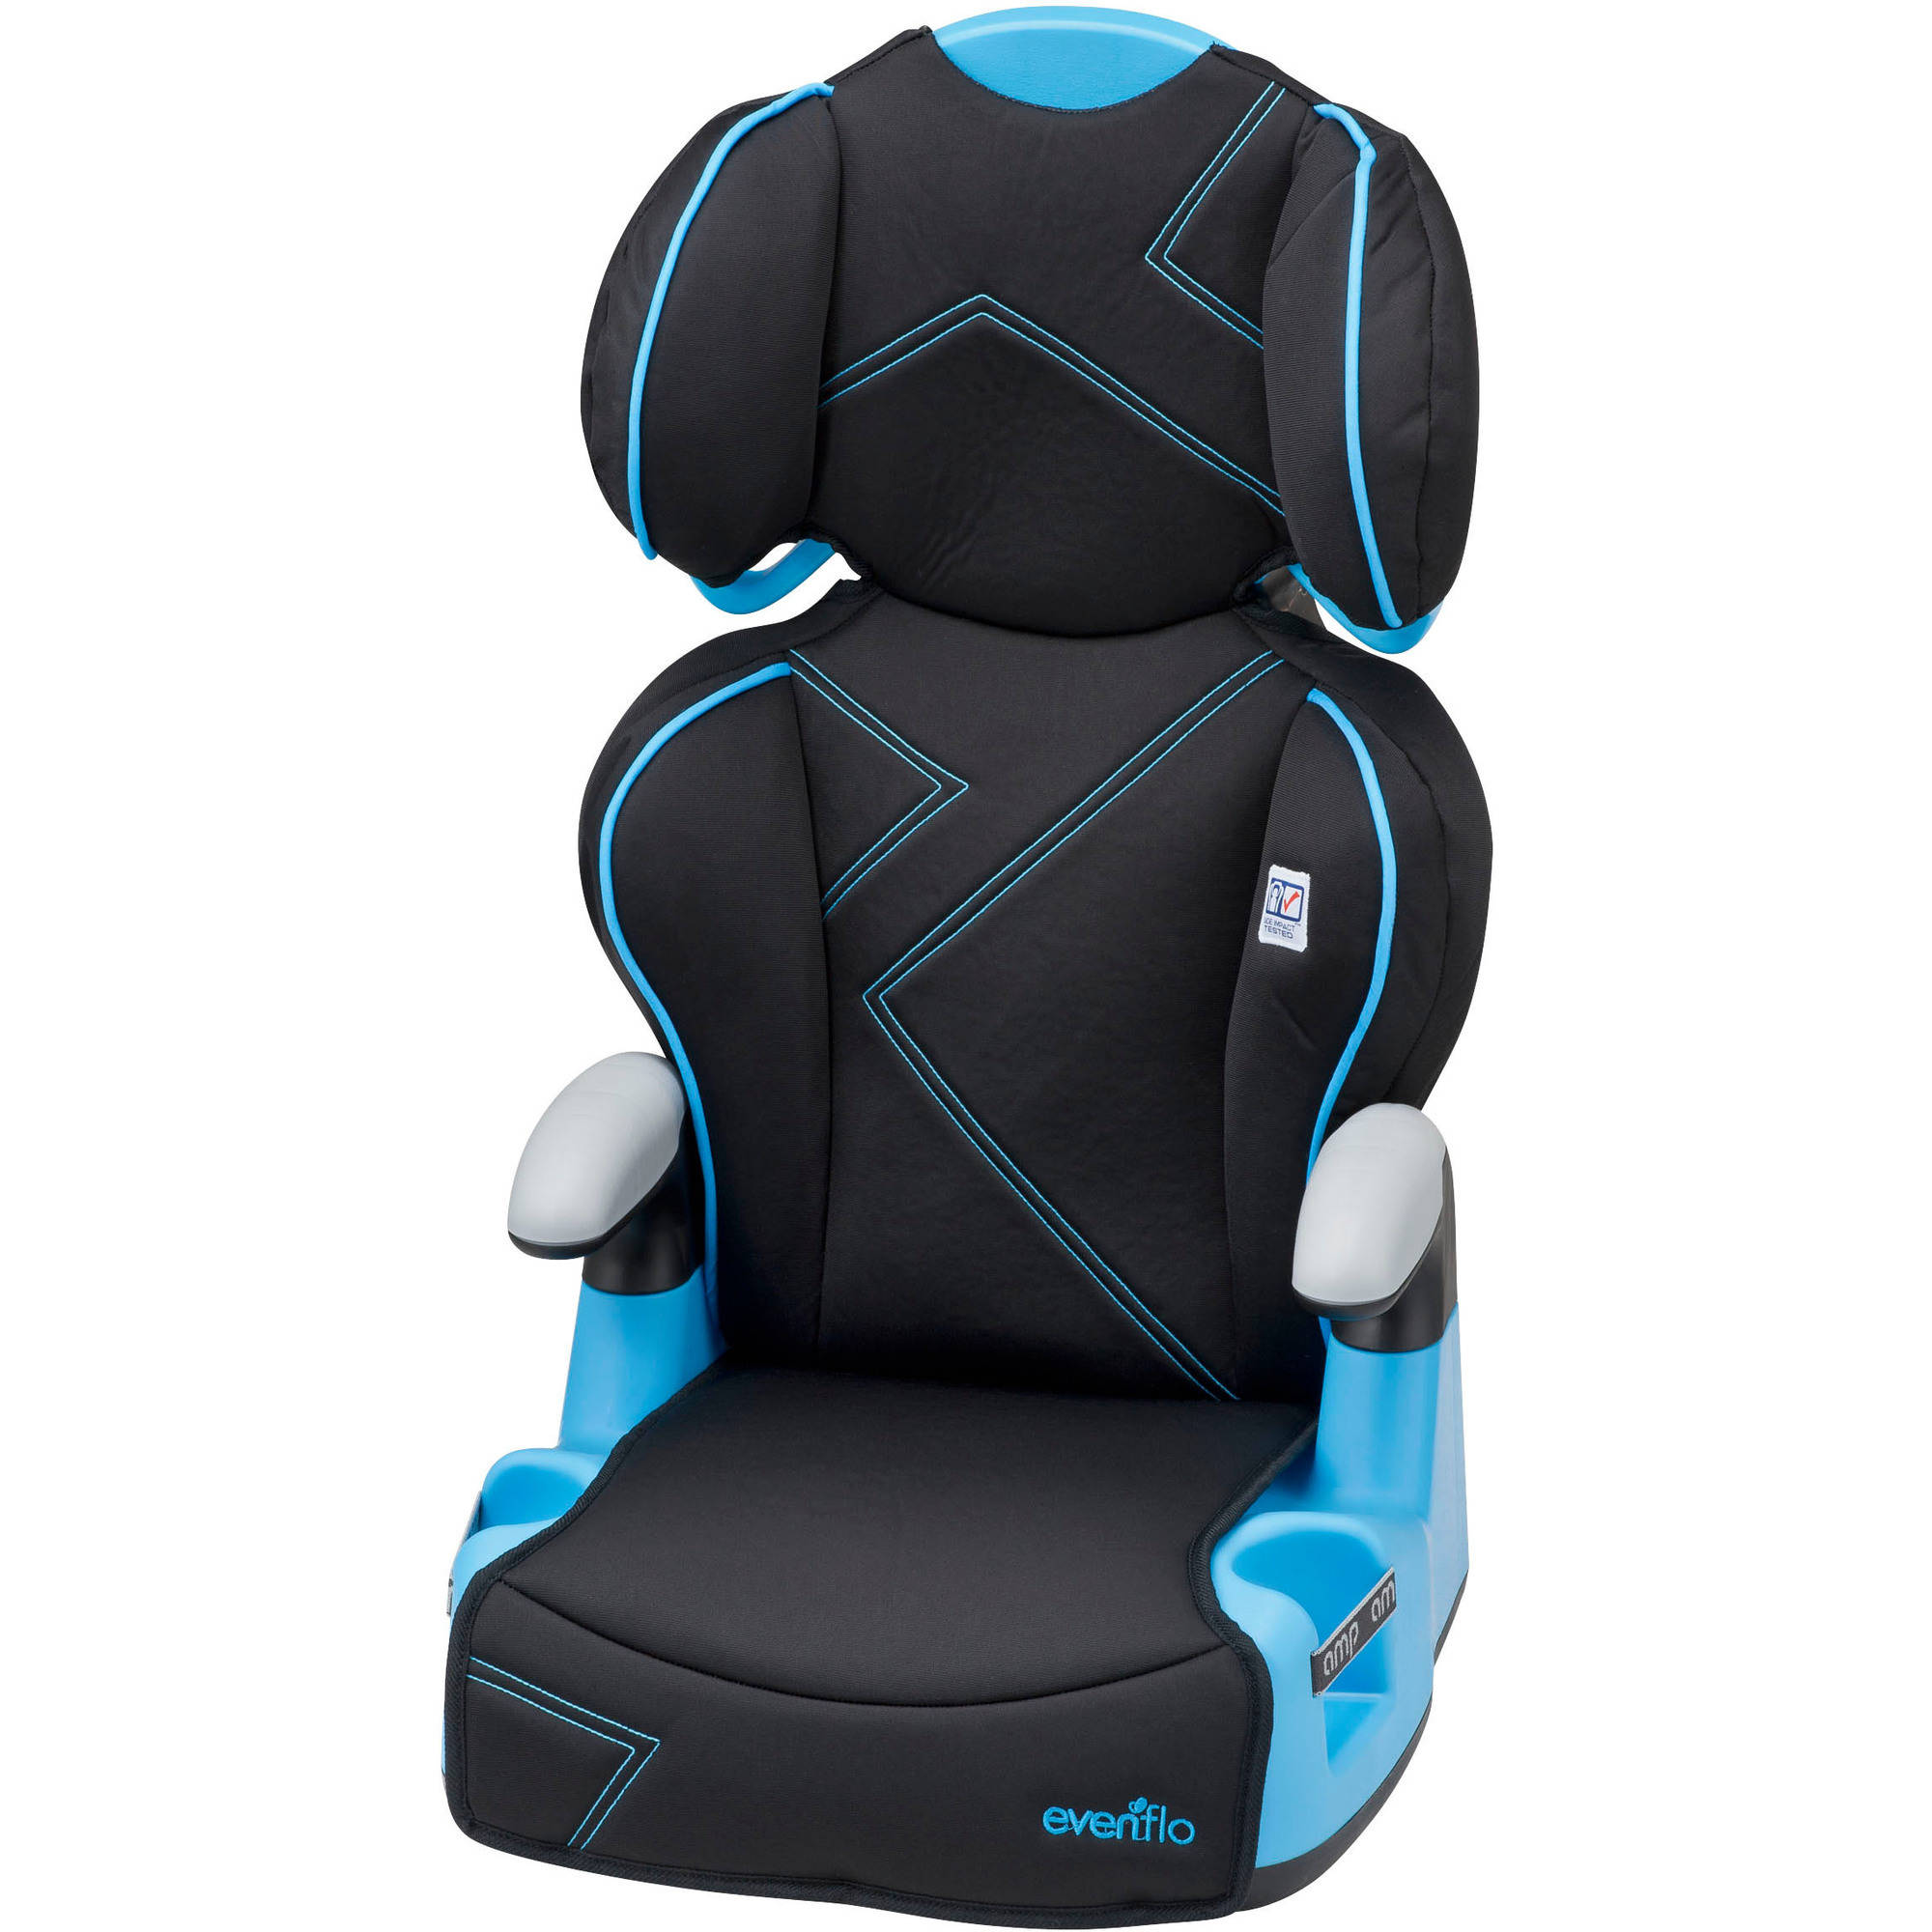 Evenflo - AMP High-Back Booster Car Seat, Blue Angles